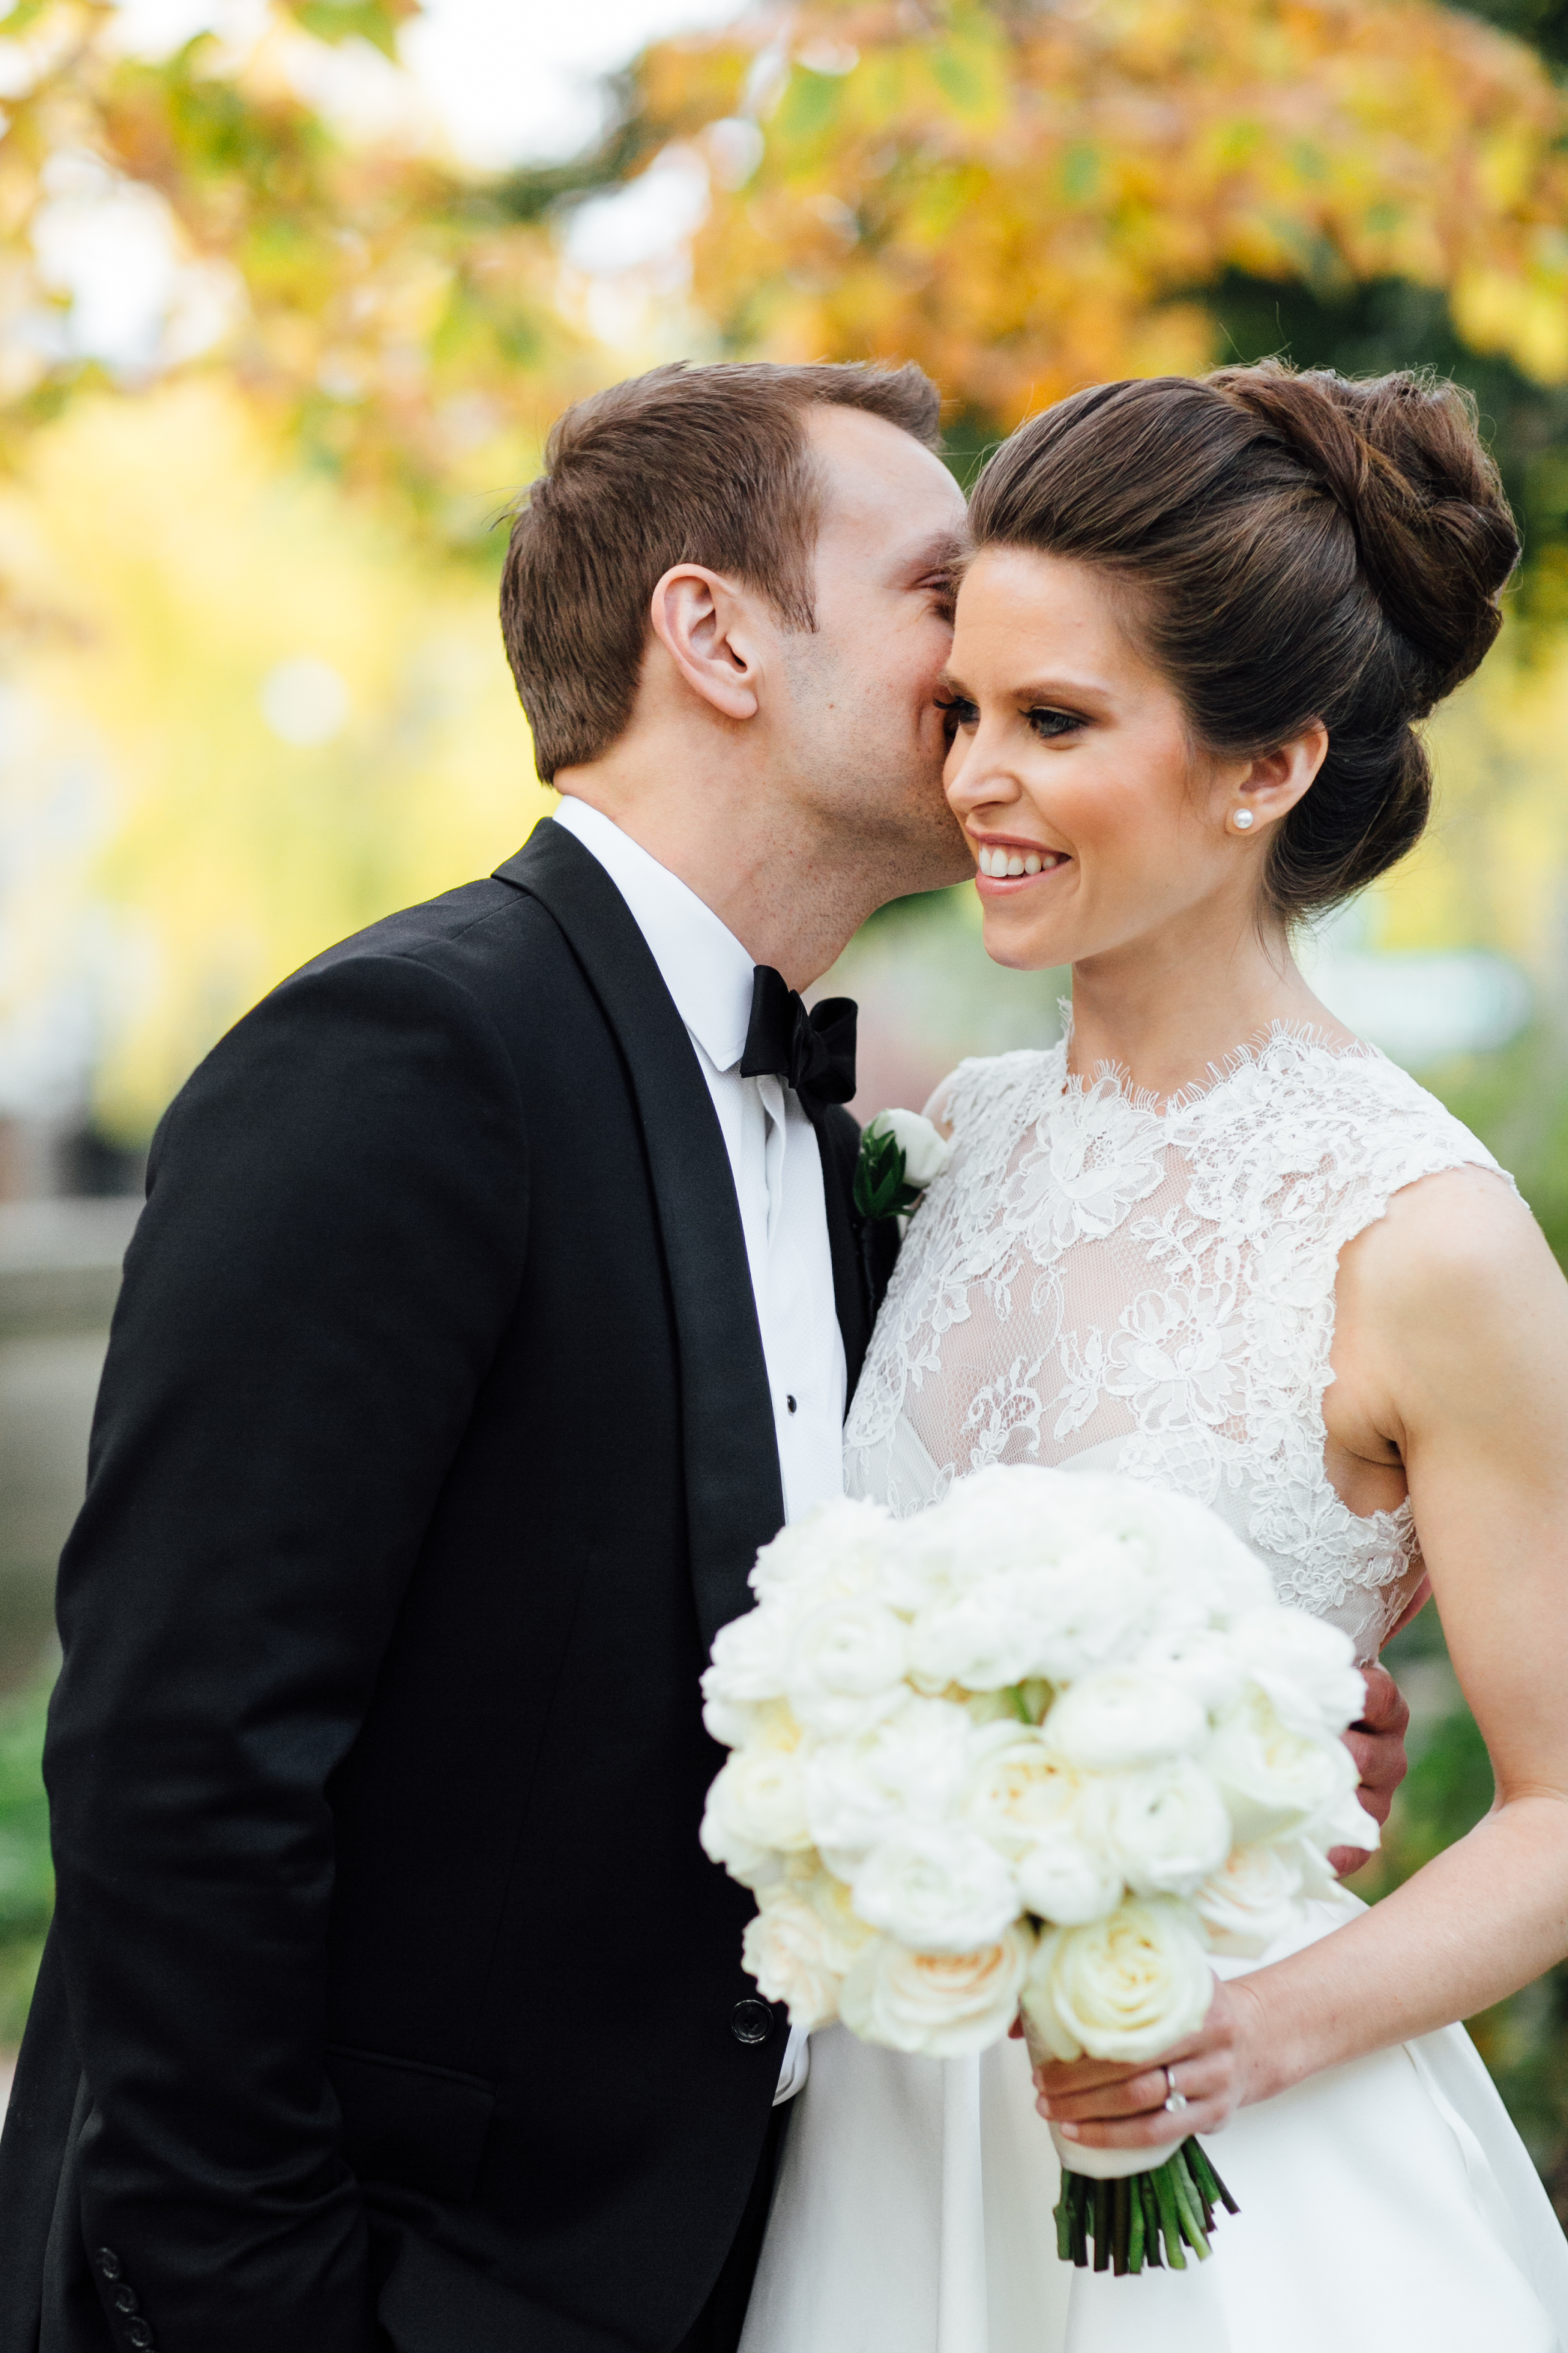 Groom kissing bride at Meridian House in DC - Maria Vicencio Photography Weddings